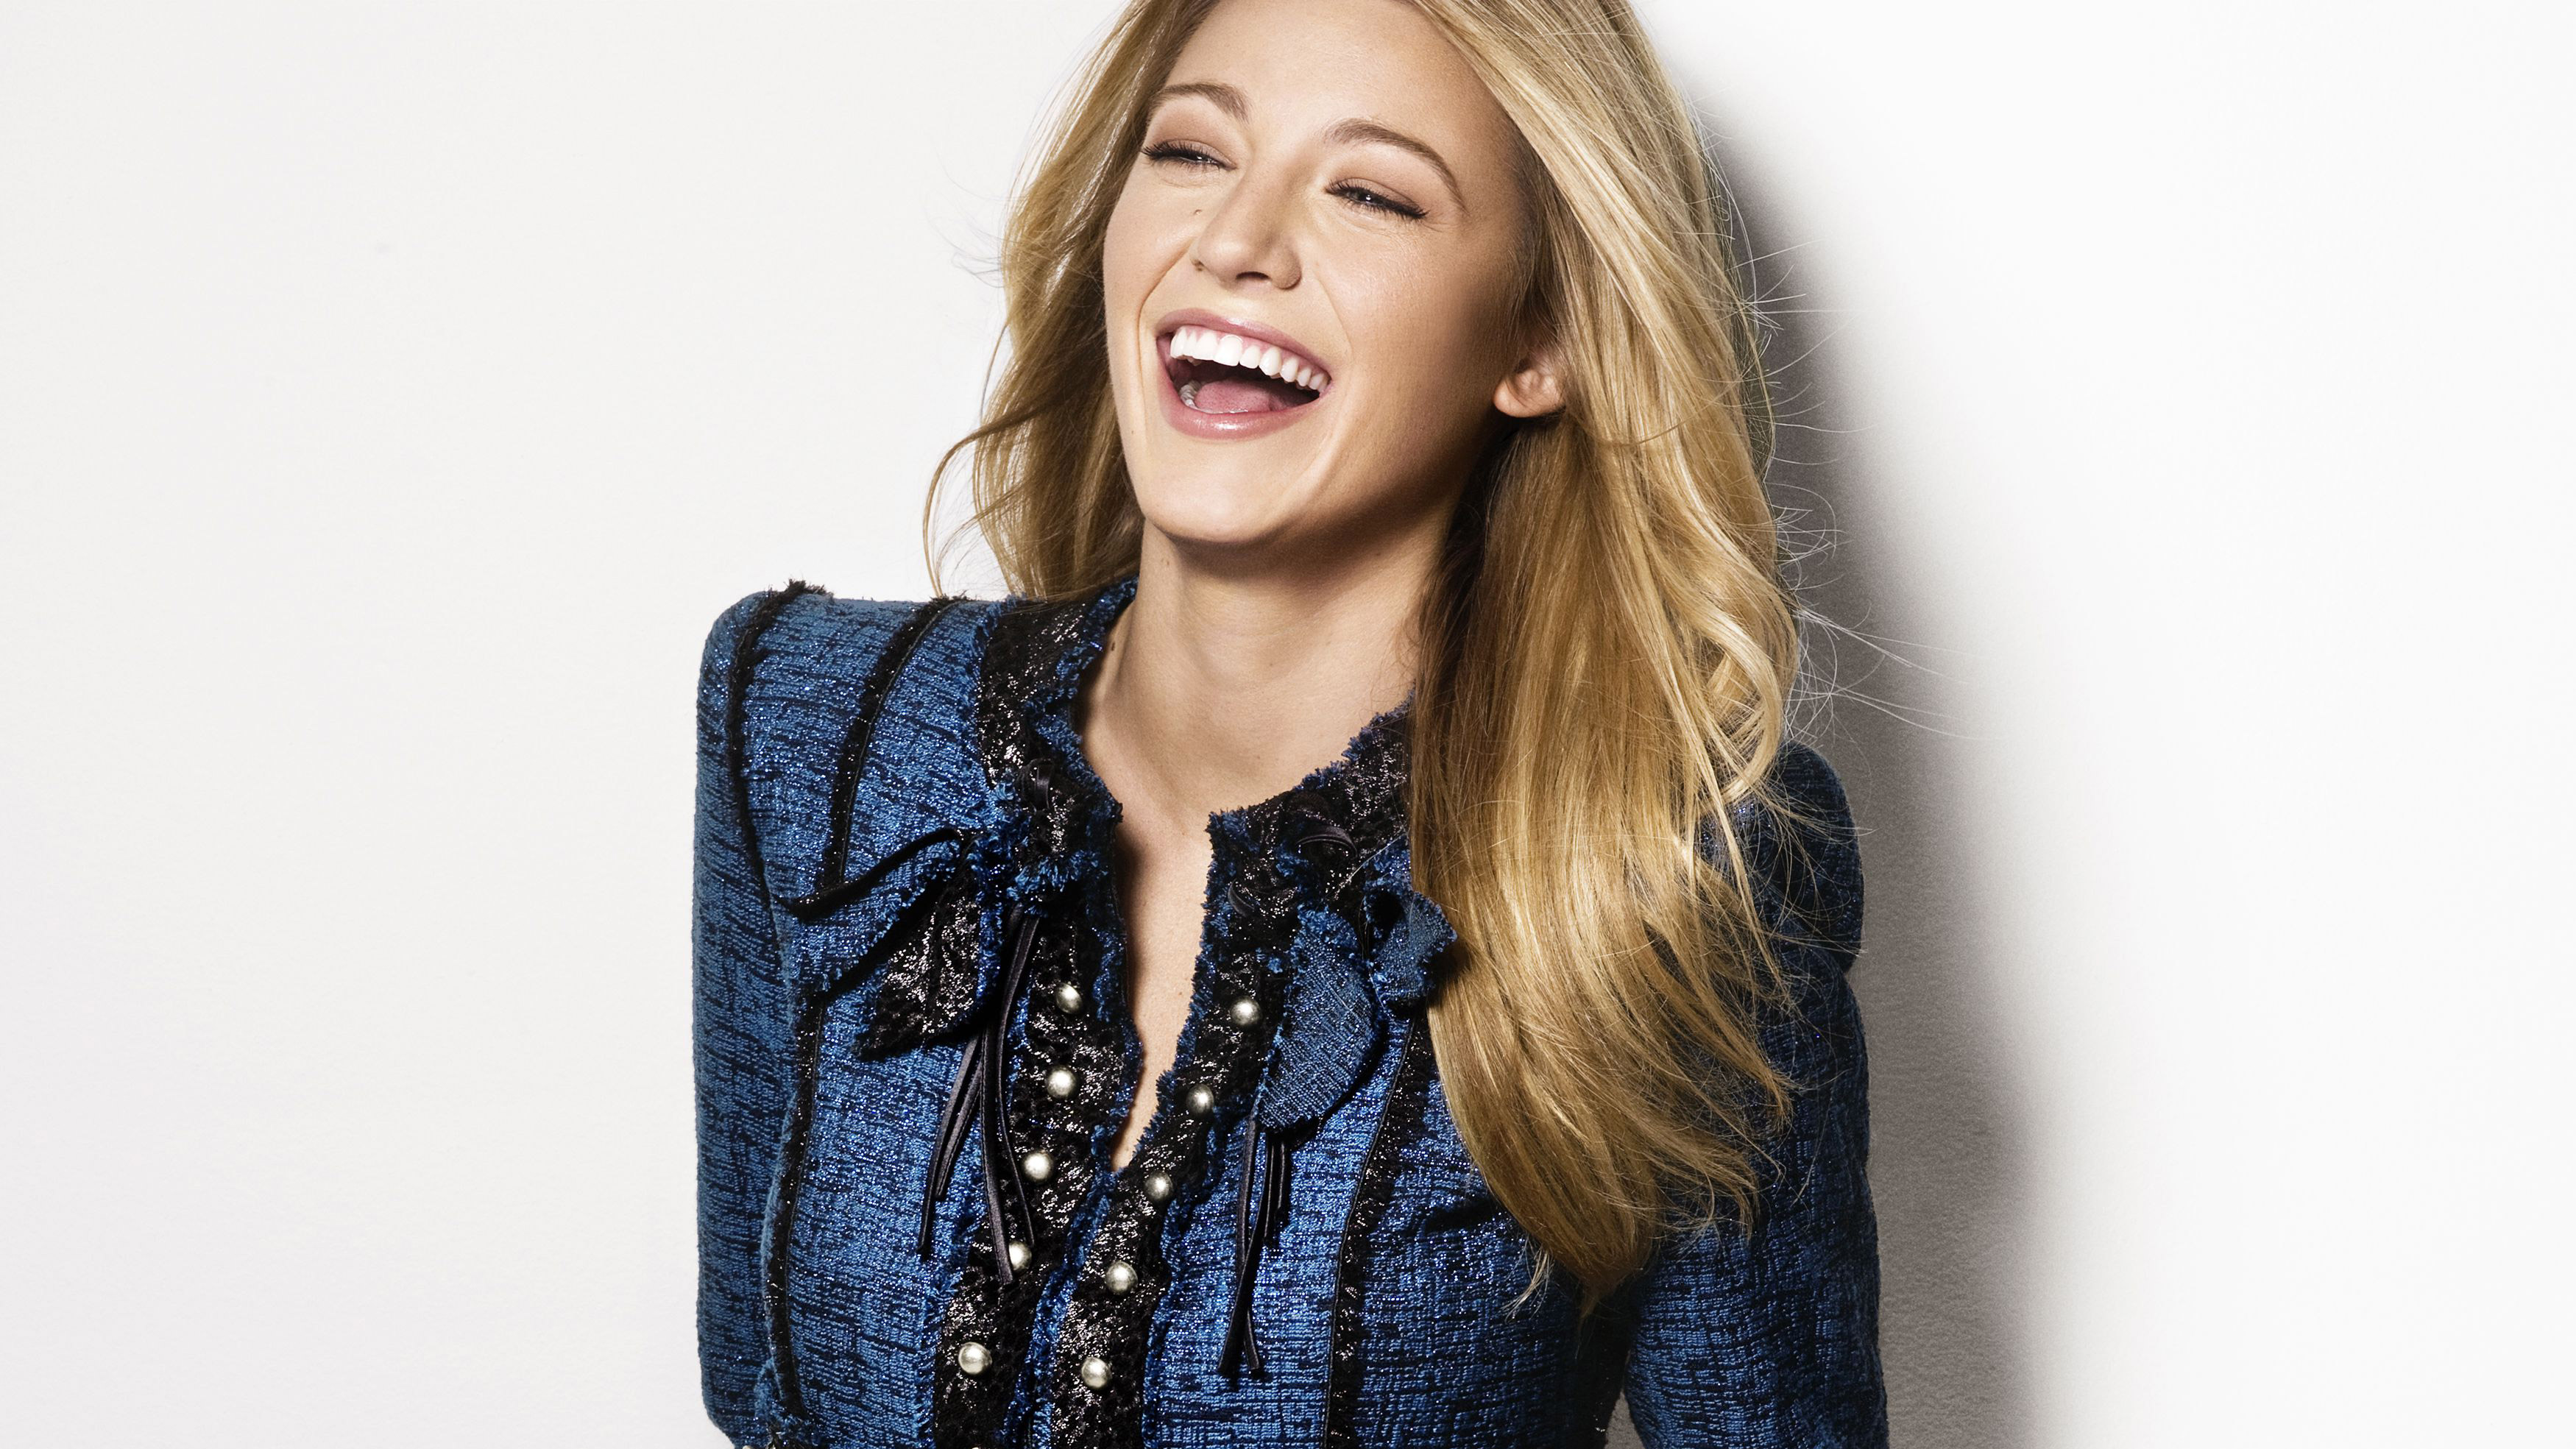 blake lively cute smile 2018, hd celebrities, 4k wallpapers, images